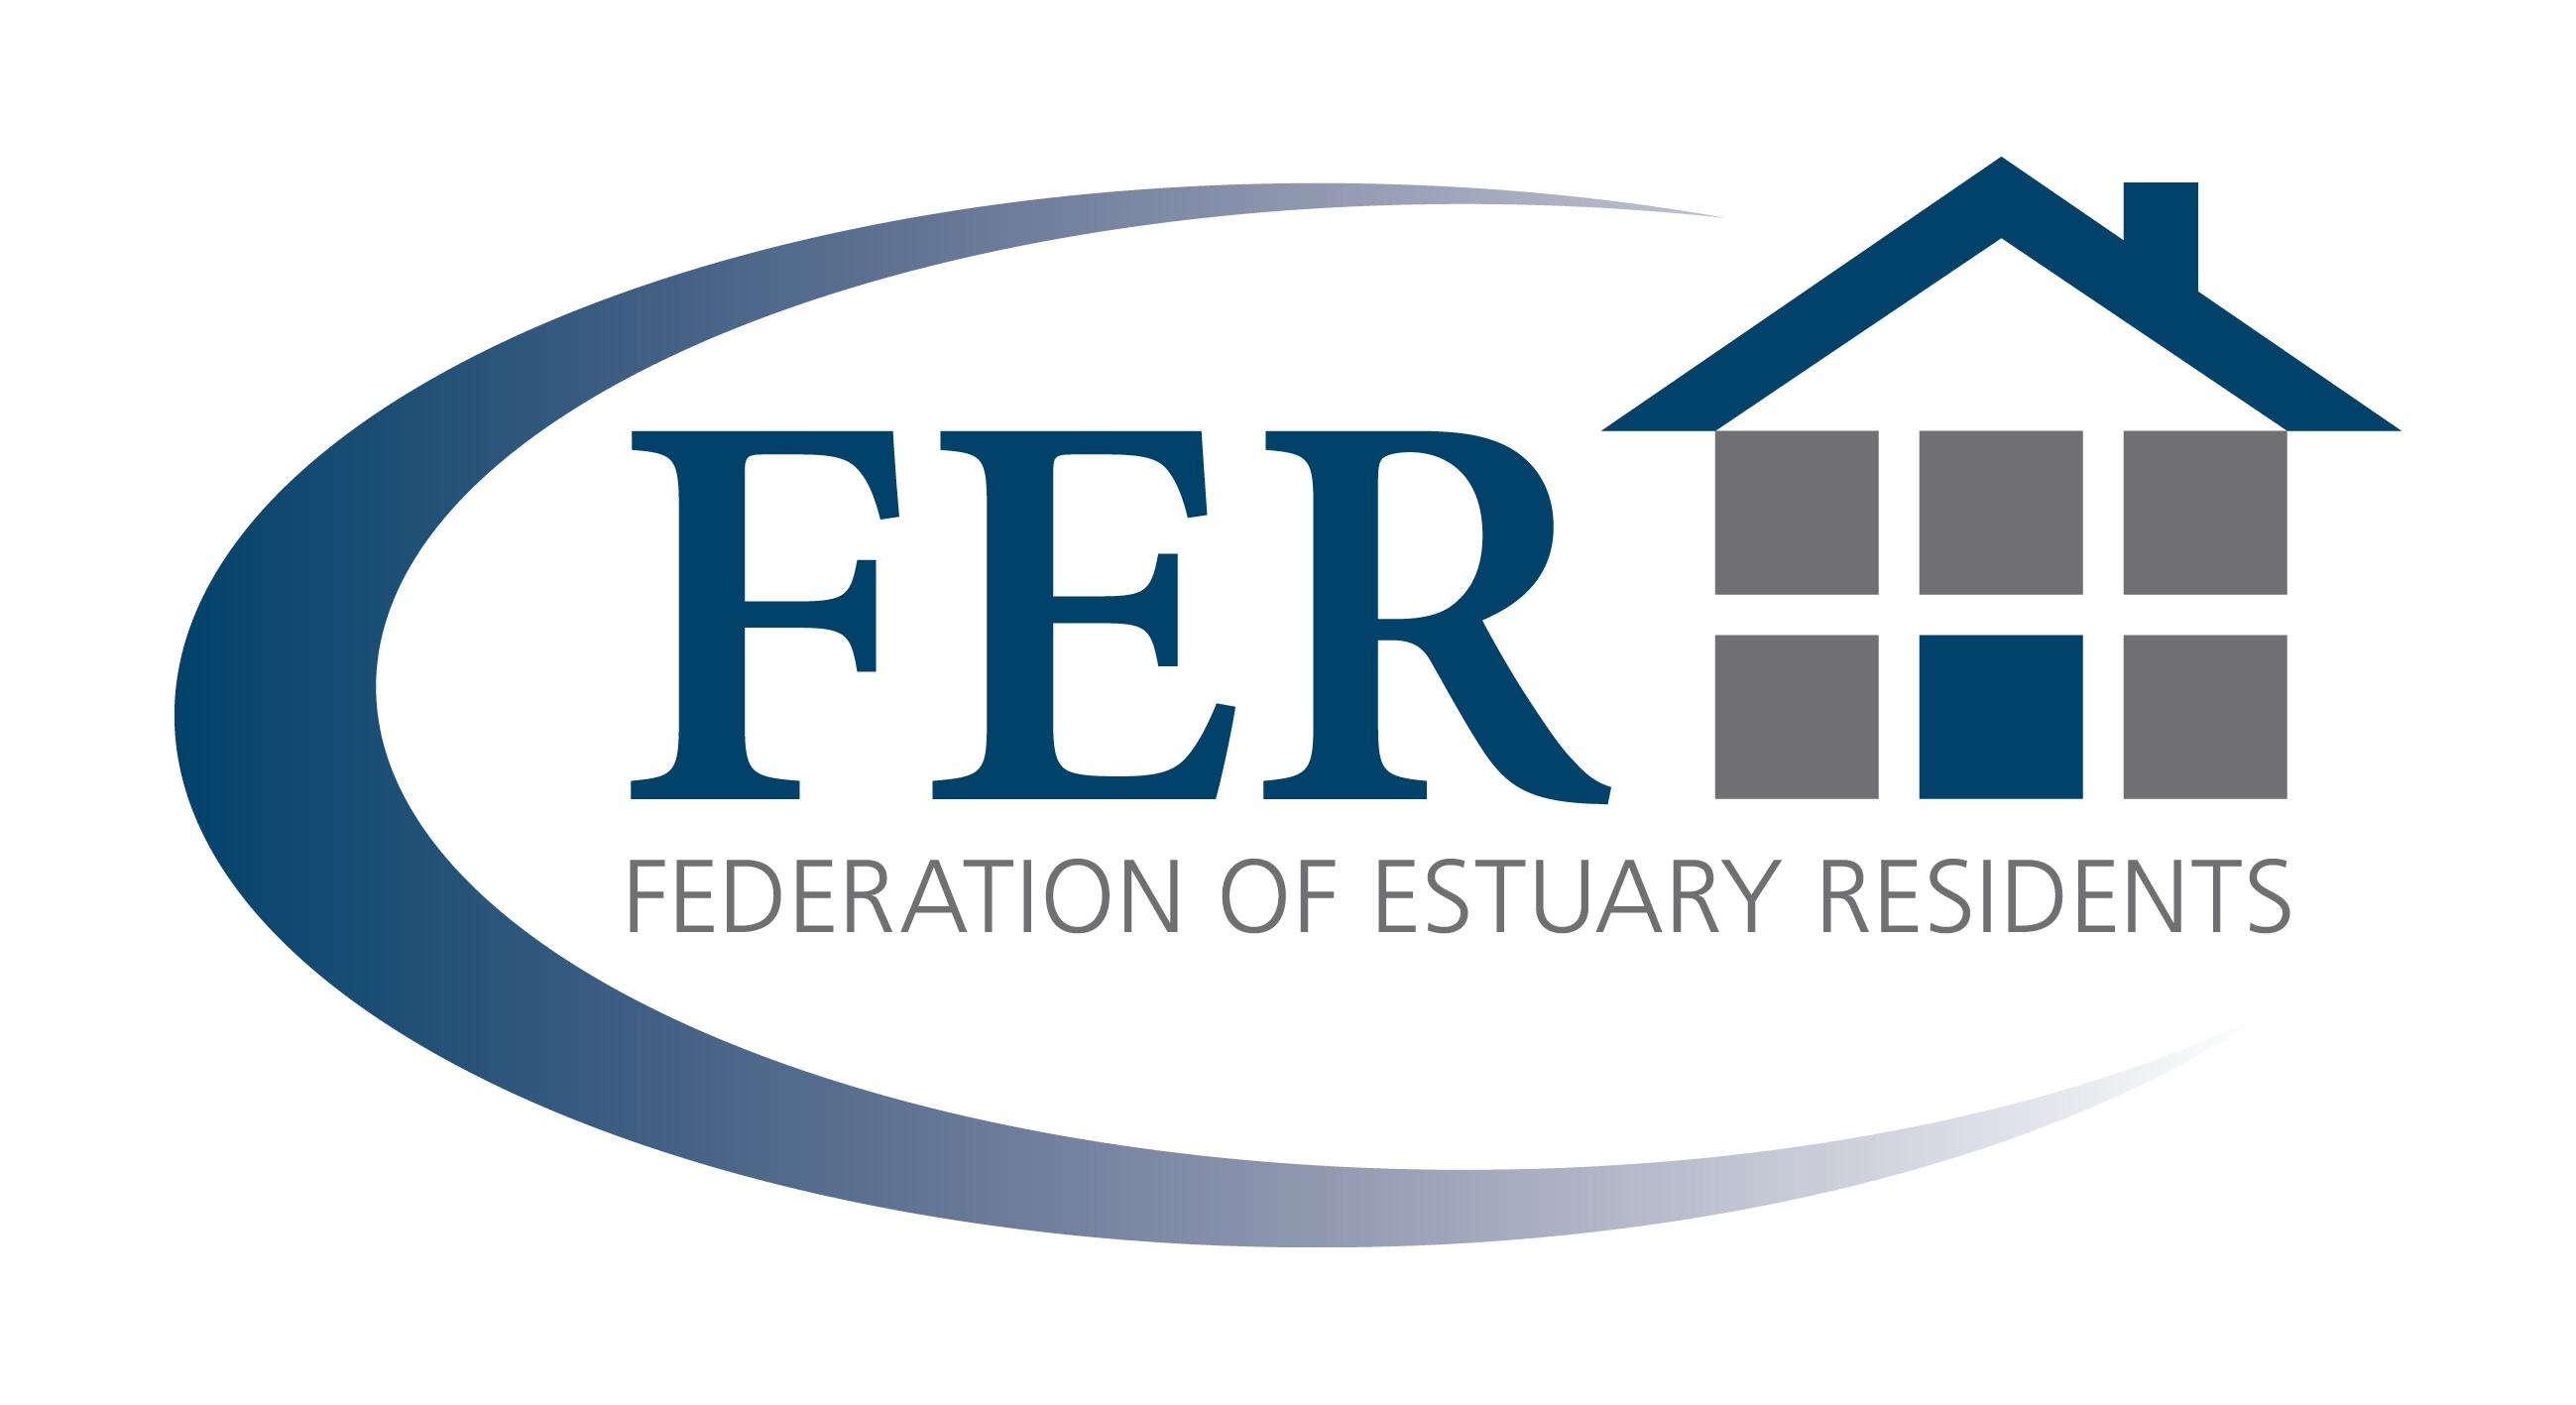 The Federation of Estuary Residents logo